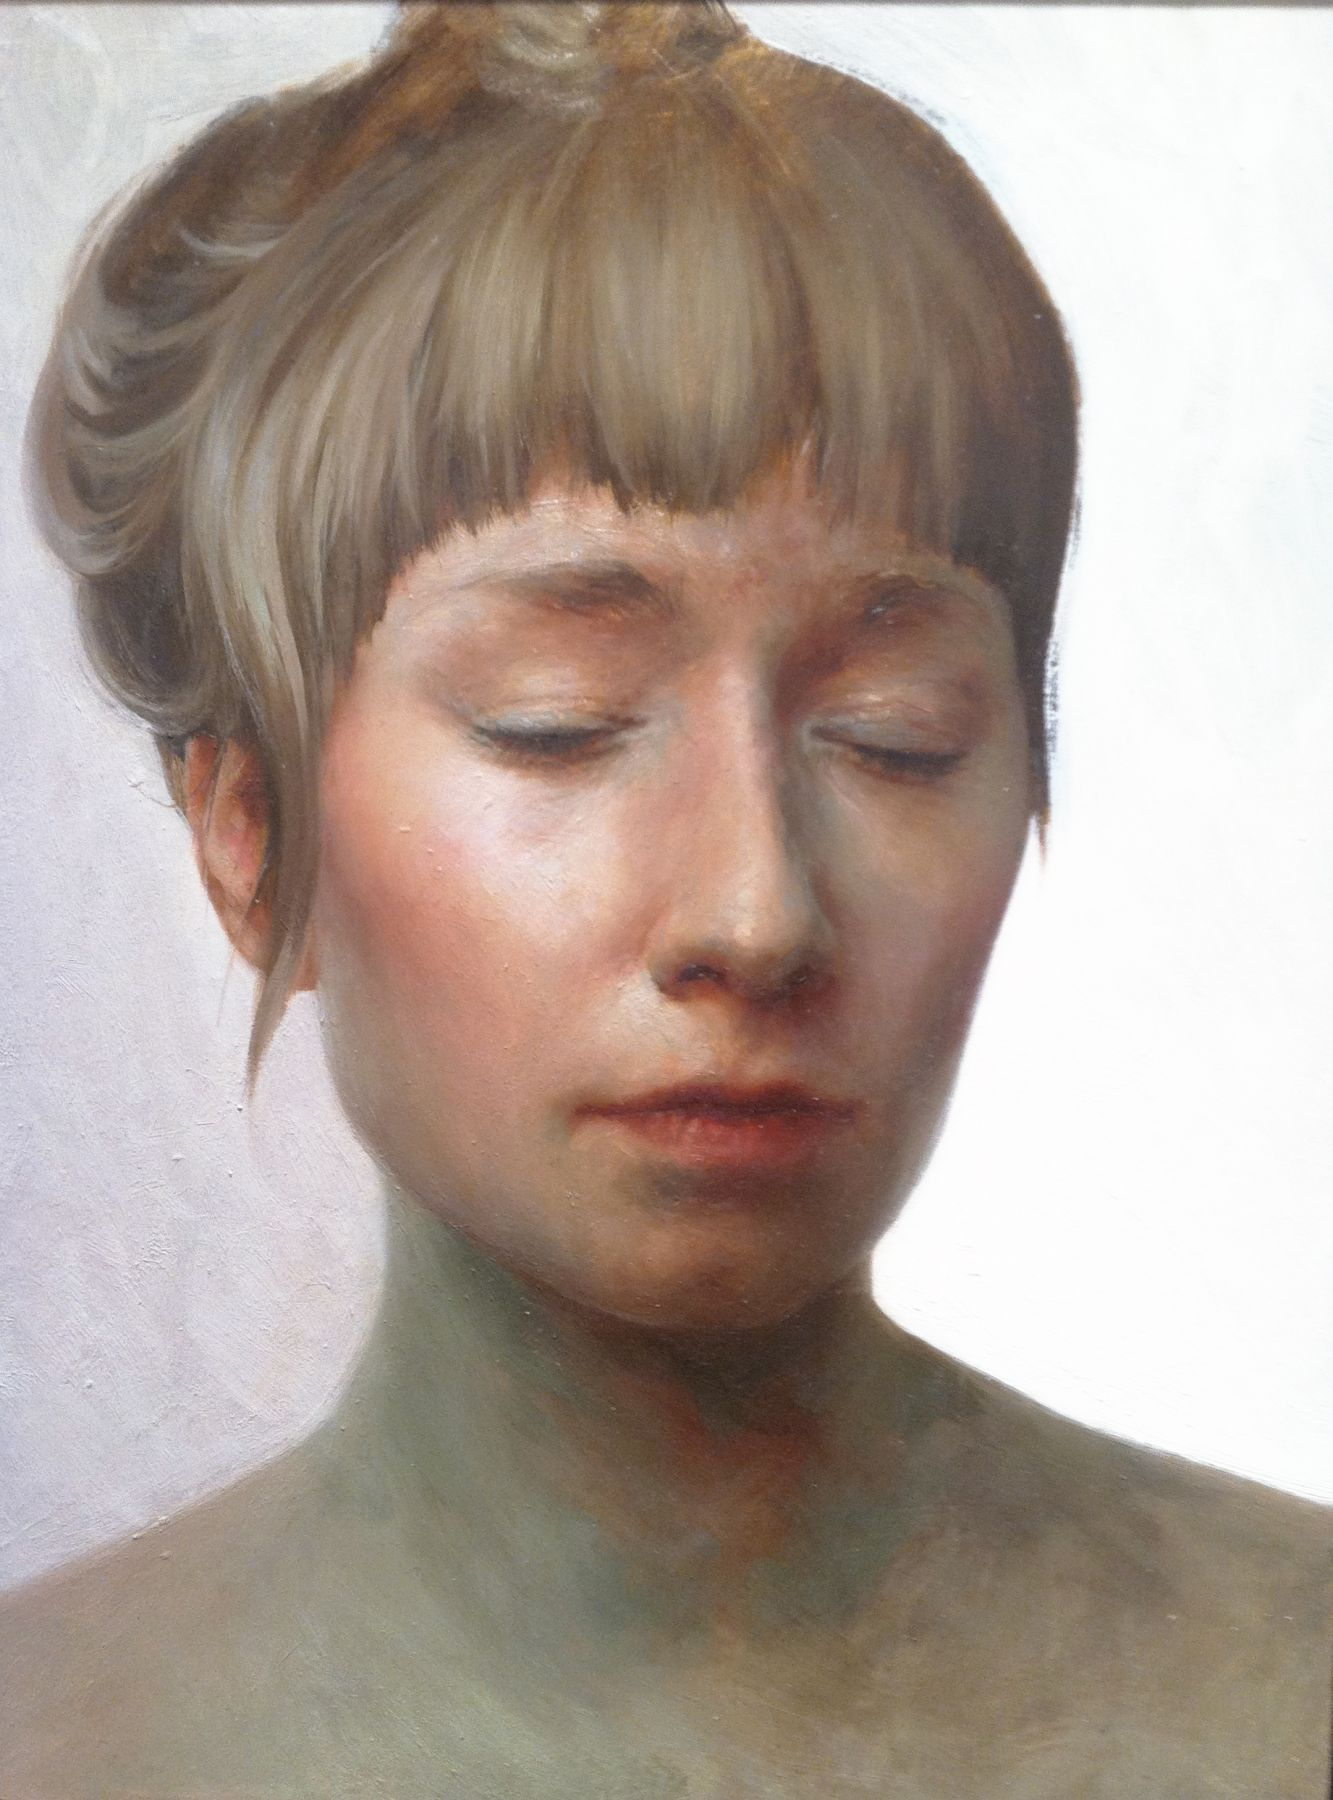 Aleah Chapin, Today (SOLD), 2012, oil on panel, 16 x 12 inches